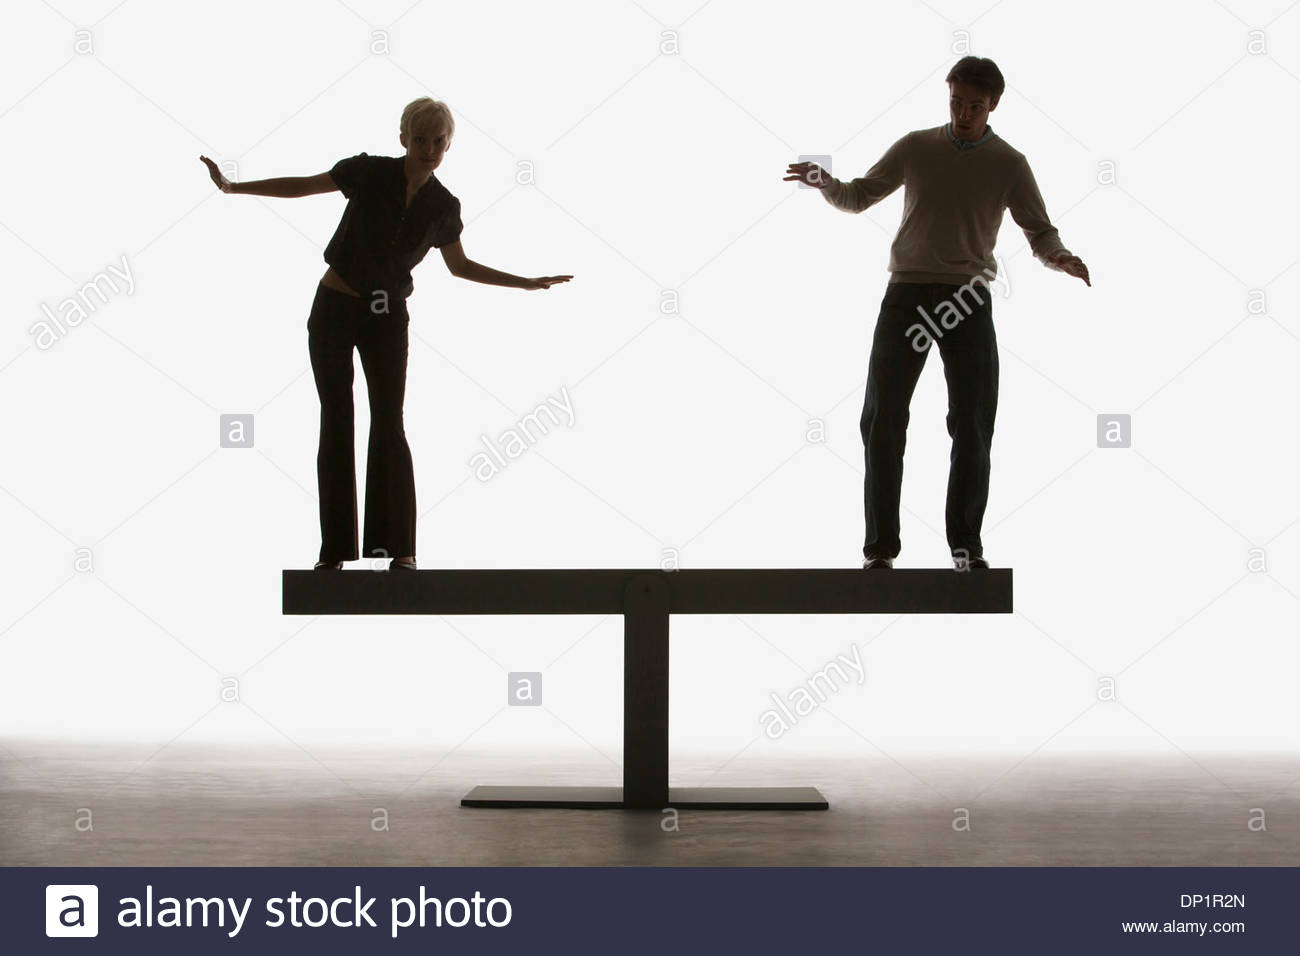 Two people balancing on top of a plank - Stock Image